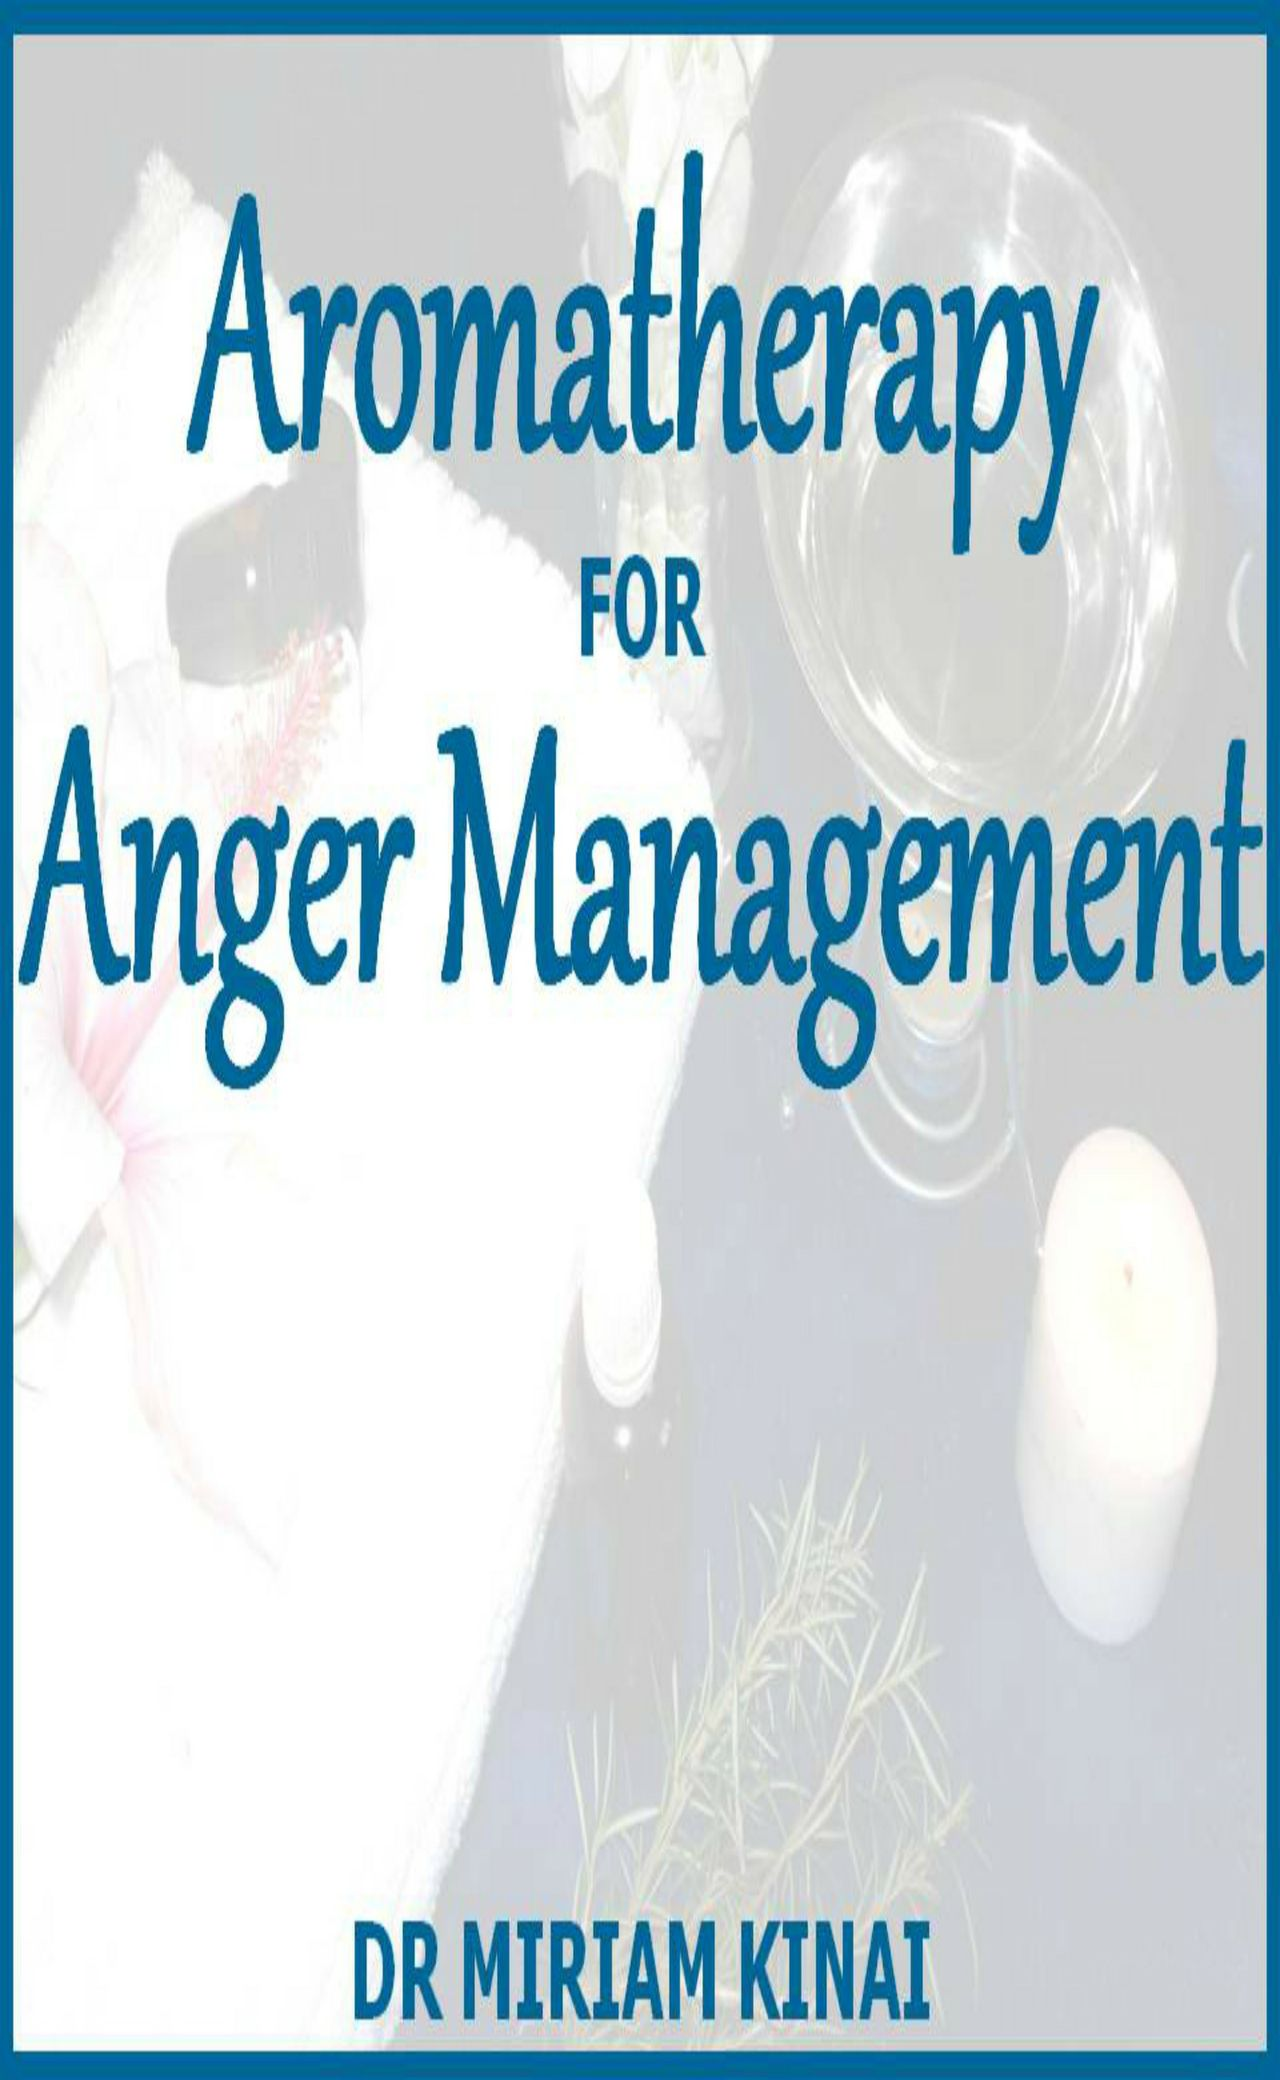 Aromatherapy for Anger Management